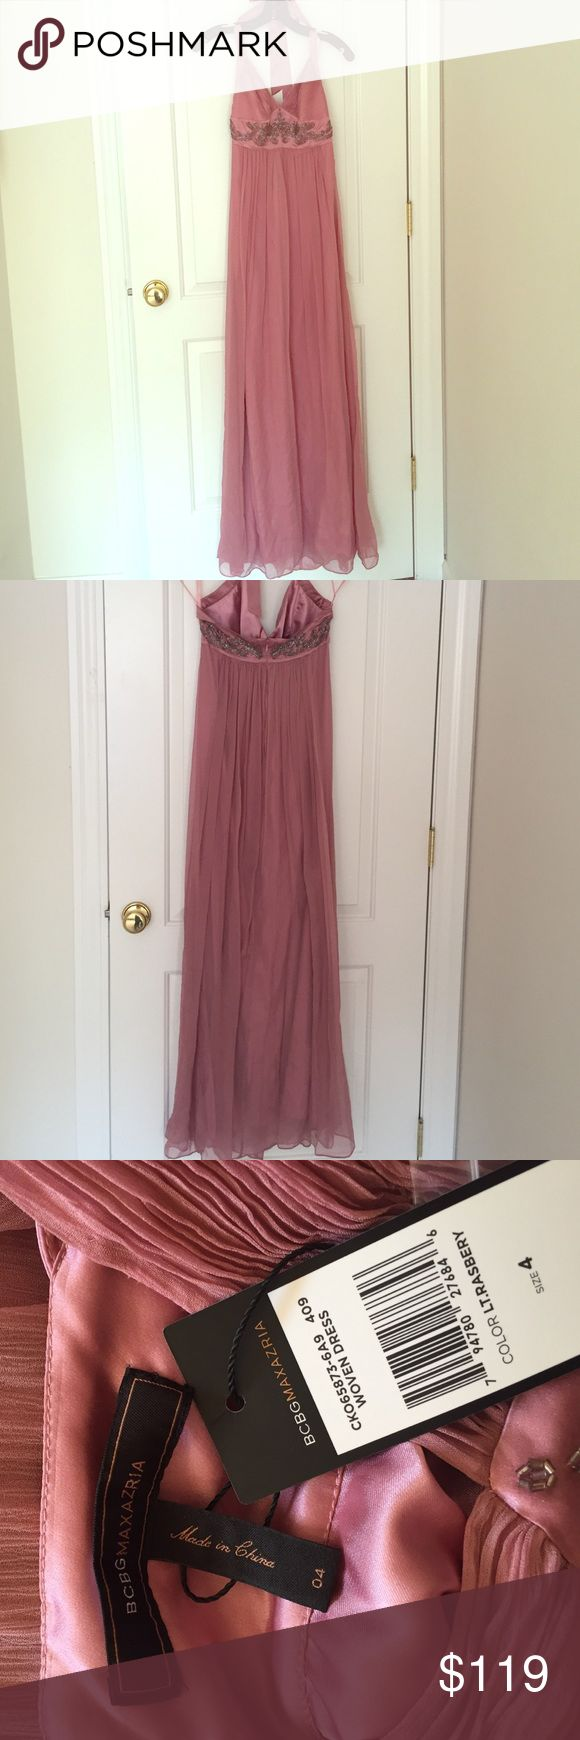 BCBG beaded silk halter maxi dress NWT Silk dress, polyester lining. Perfect for prom or an evening event. BCBGMaxAzria Dresses